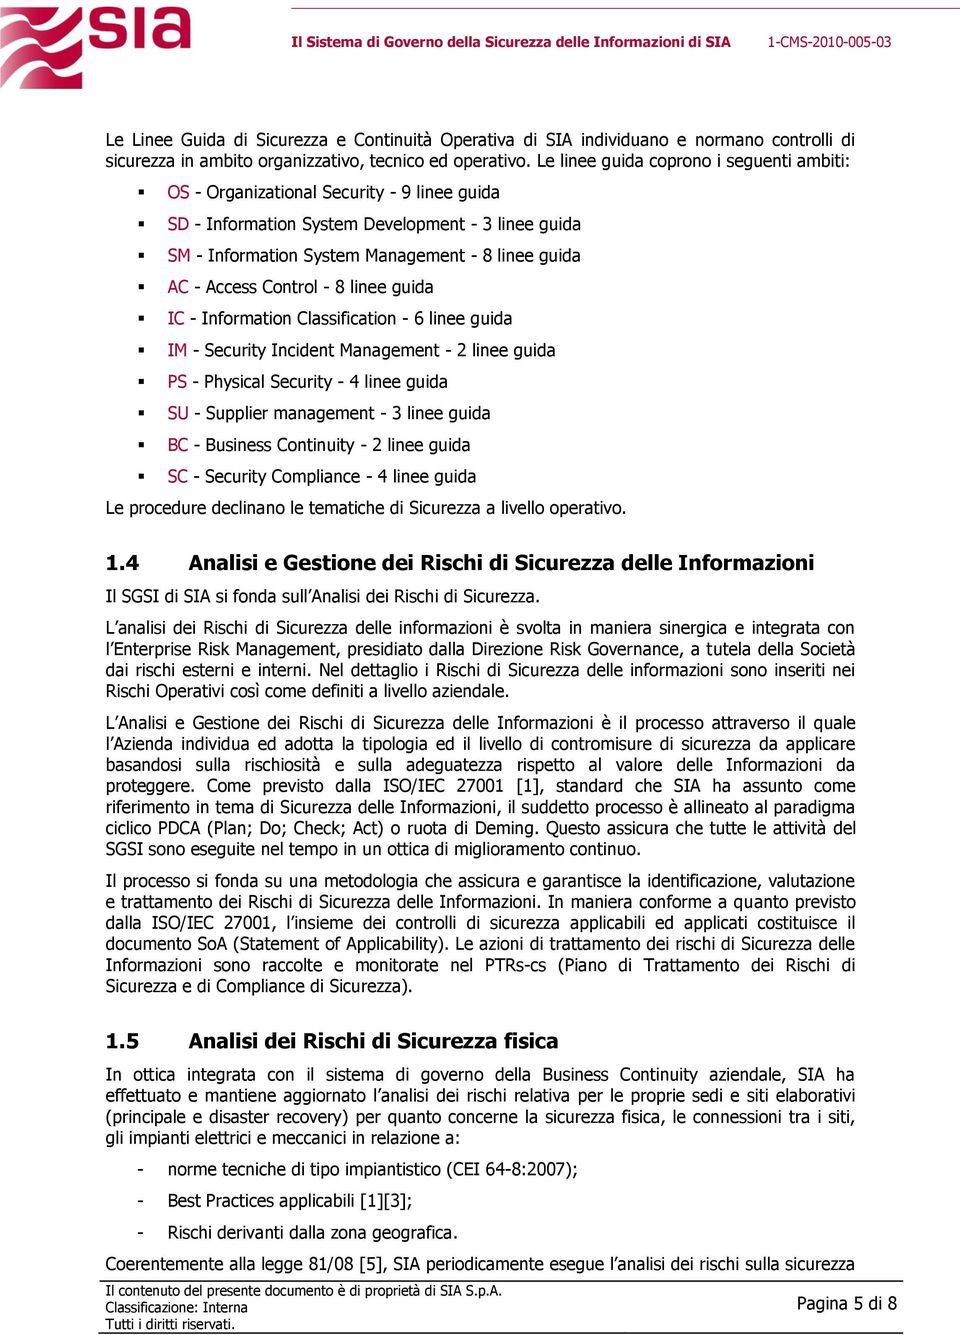 Access Control - 8 linee guida IC - Information Classification - 6 linee guida IM - Security Incident Management - 2 linee guida PS - Physical Security - 4 linee guida SU - Supplier management - 3